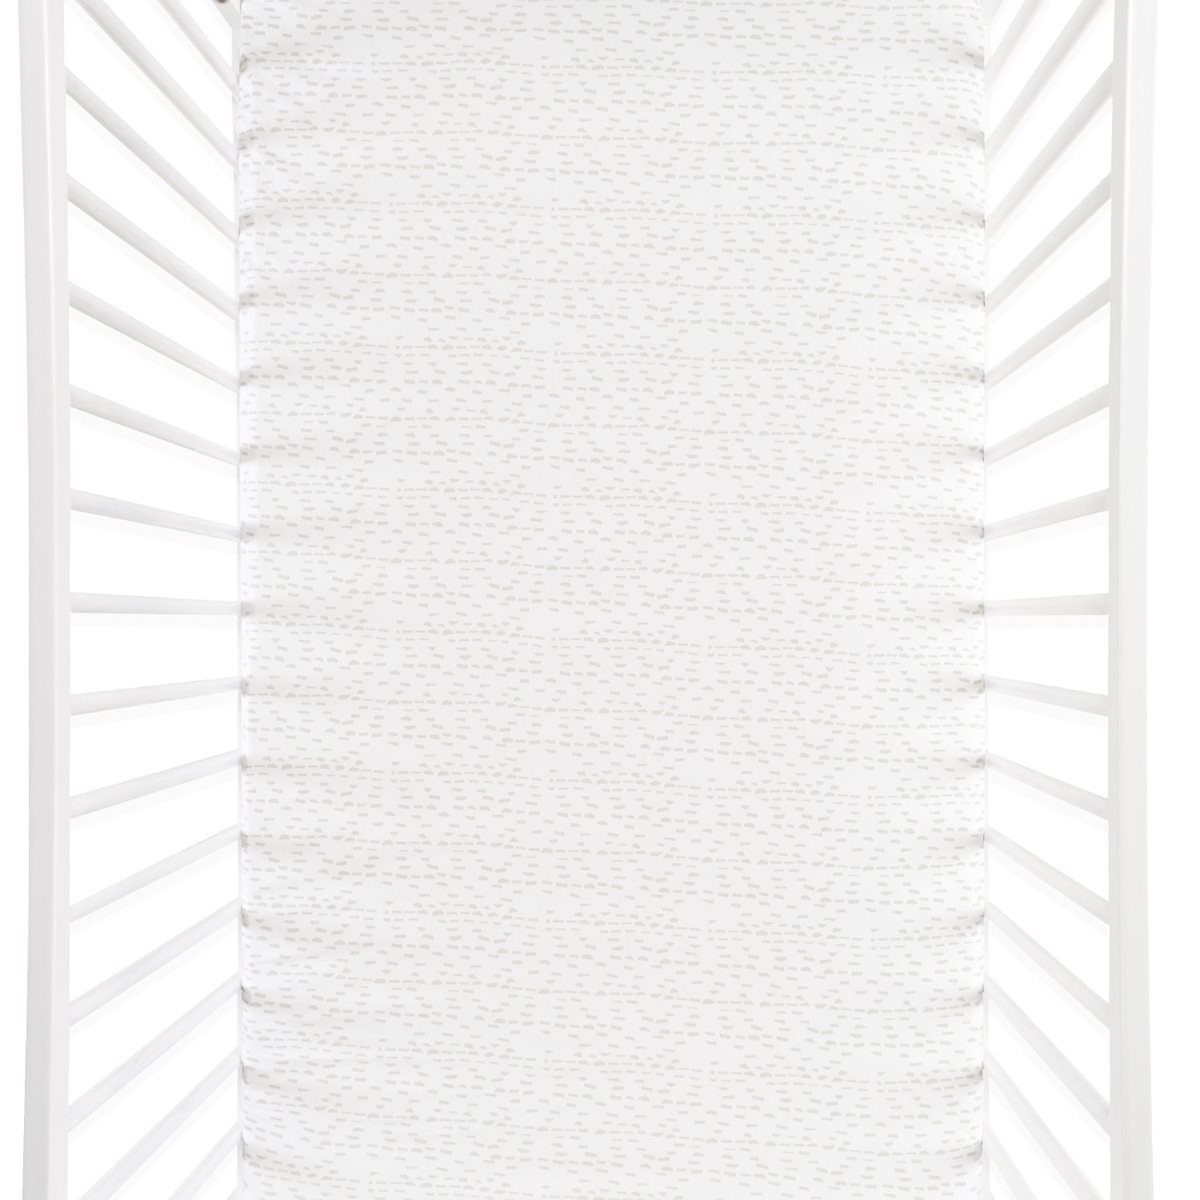 Cot Amp Cot Bed Fitted Sheet In Wave Mono Dash Snuz Sn 252 Z